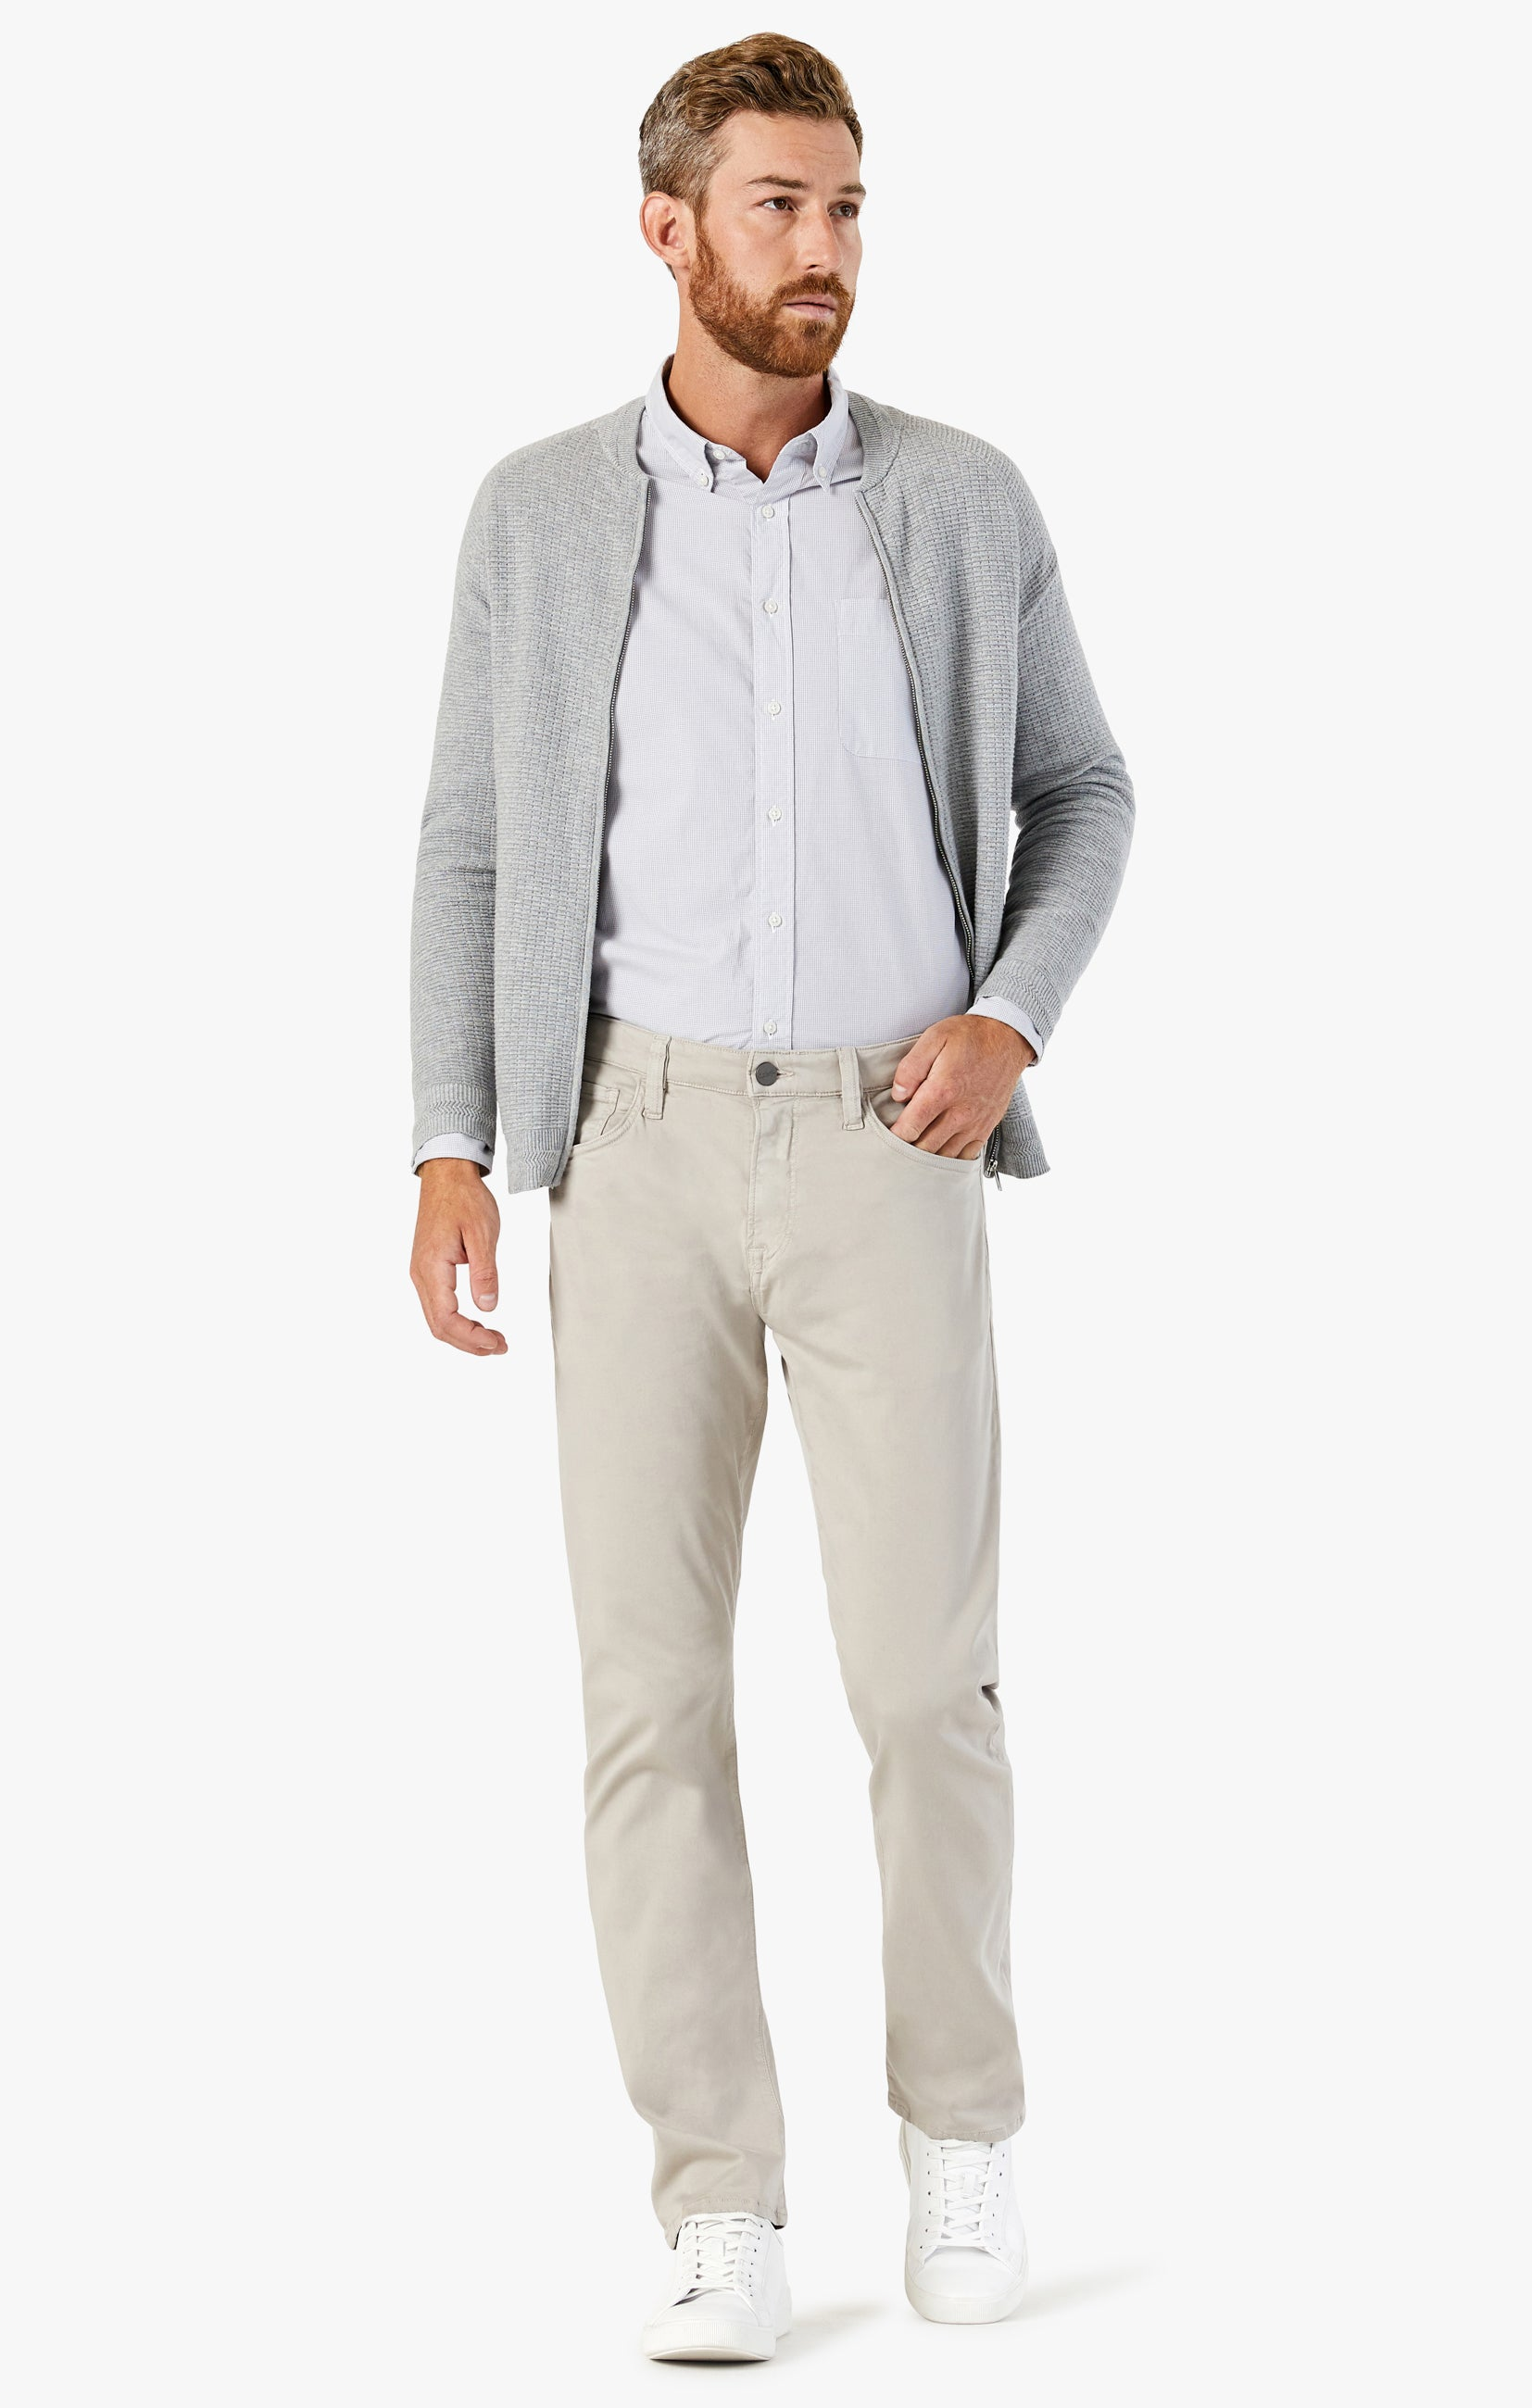 Courage Straight Leg Pants In Dawn Twill Image 2